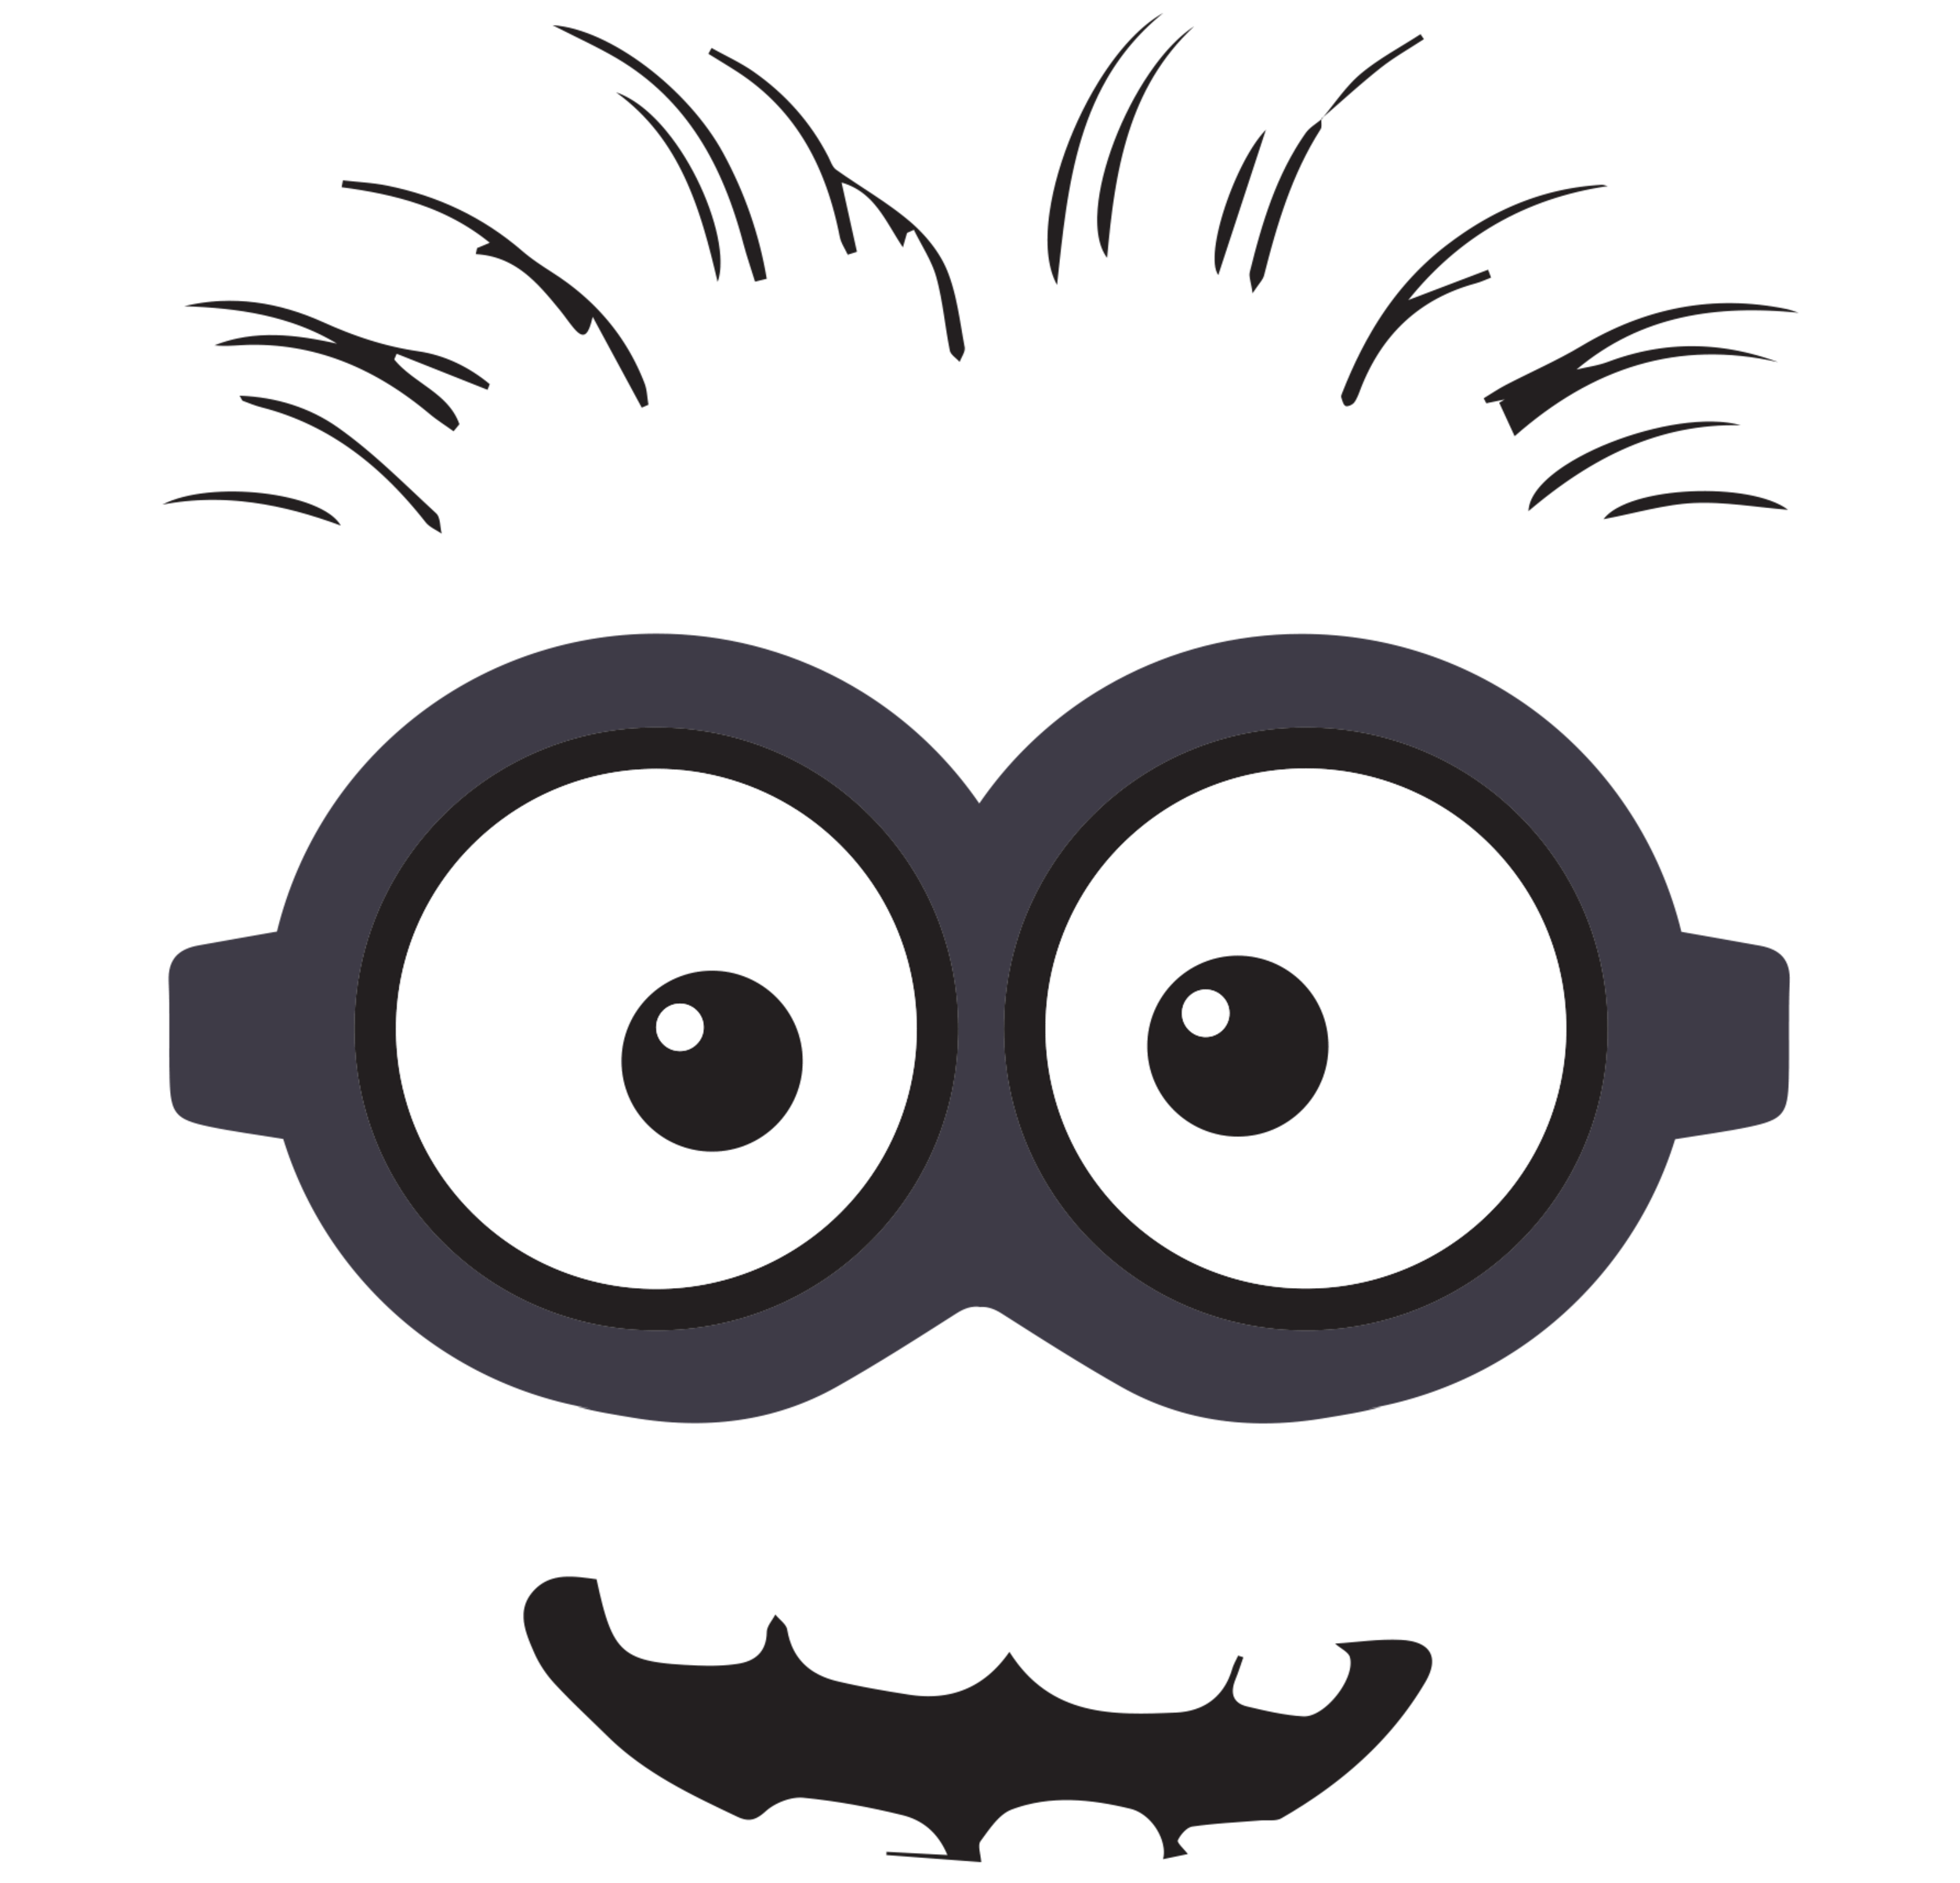 Goggles clipart outline. Minion gallery by robin